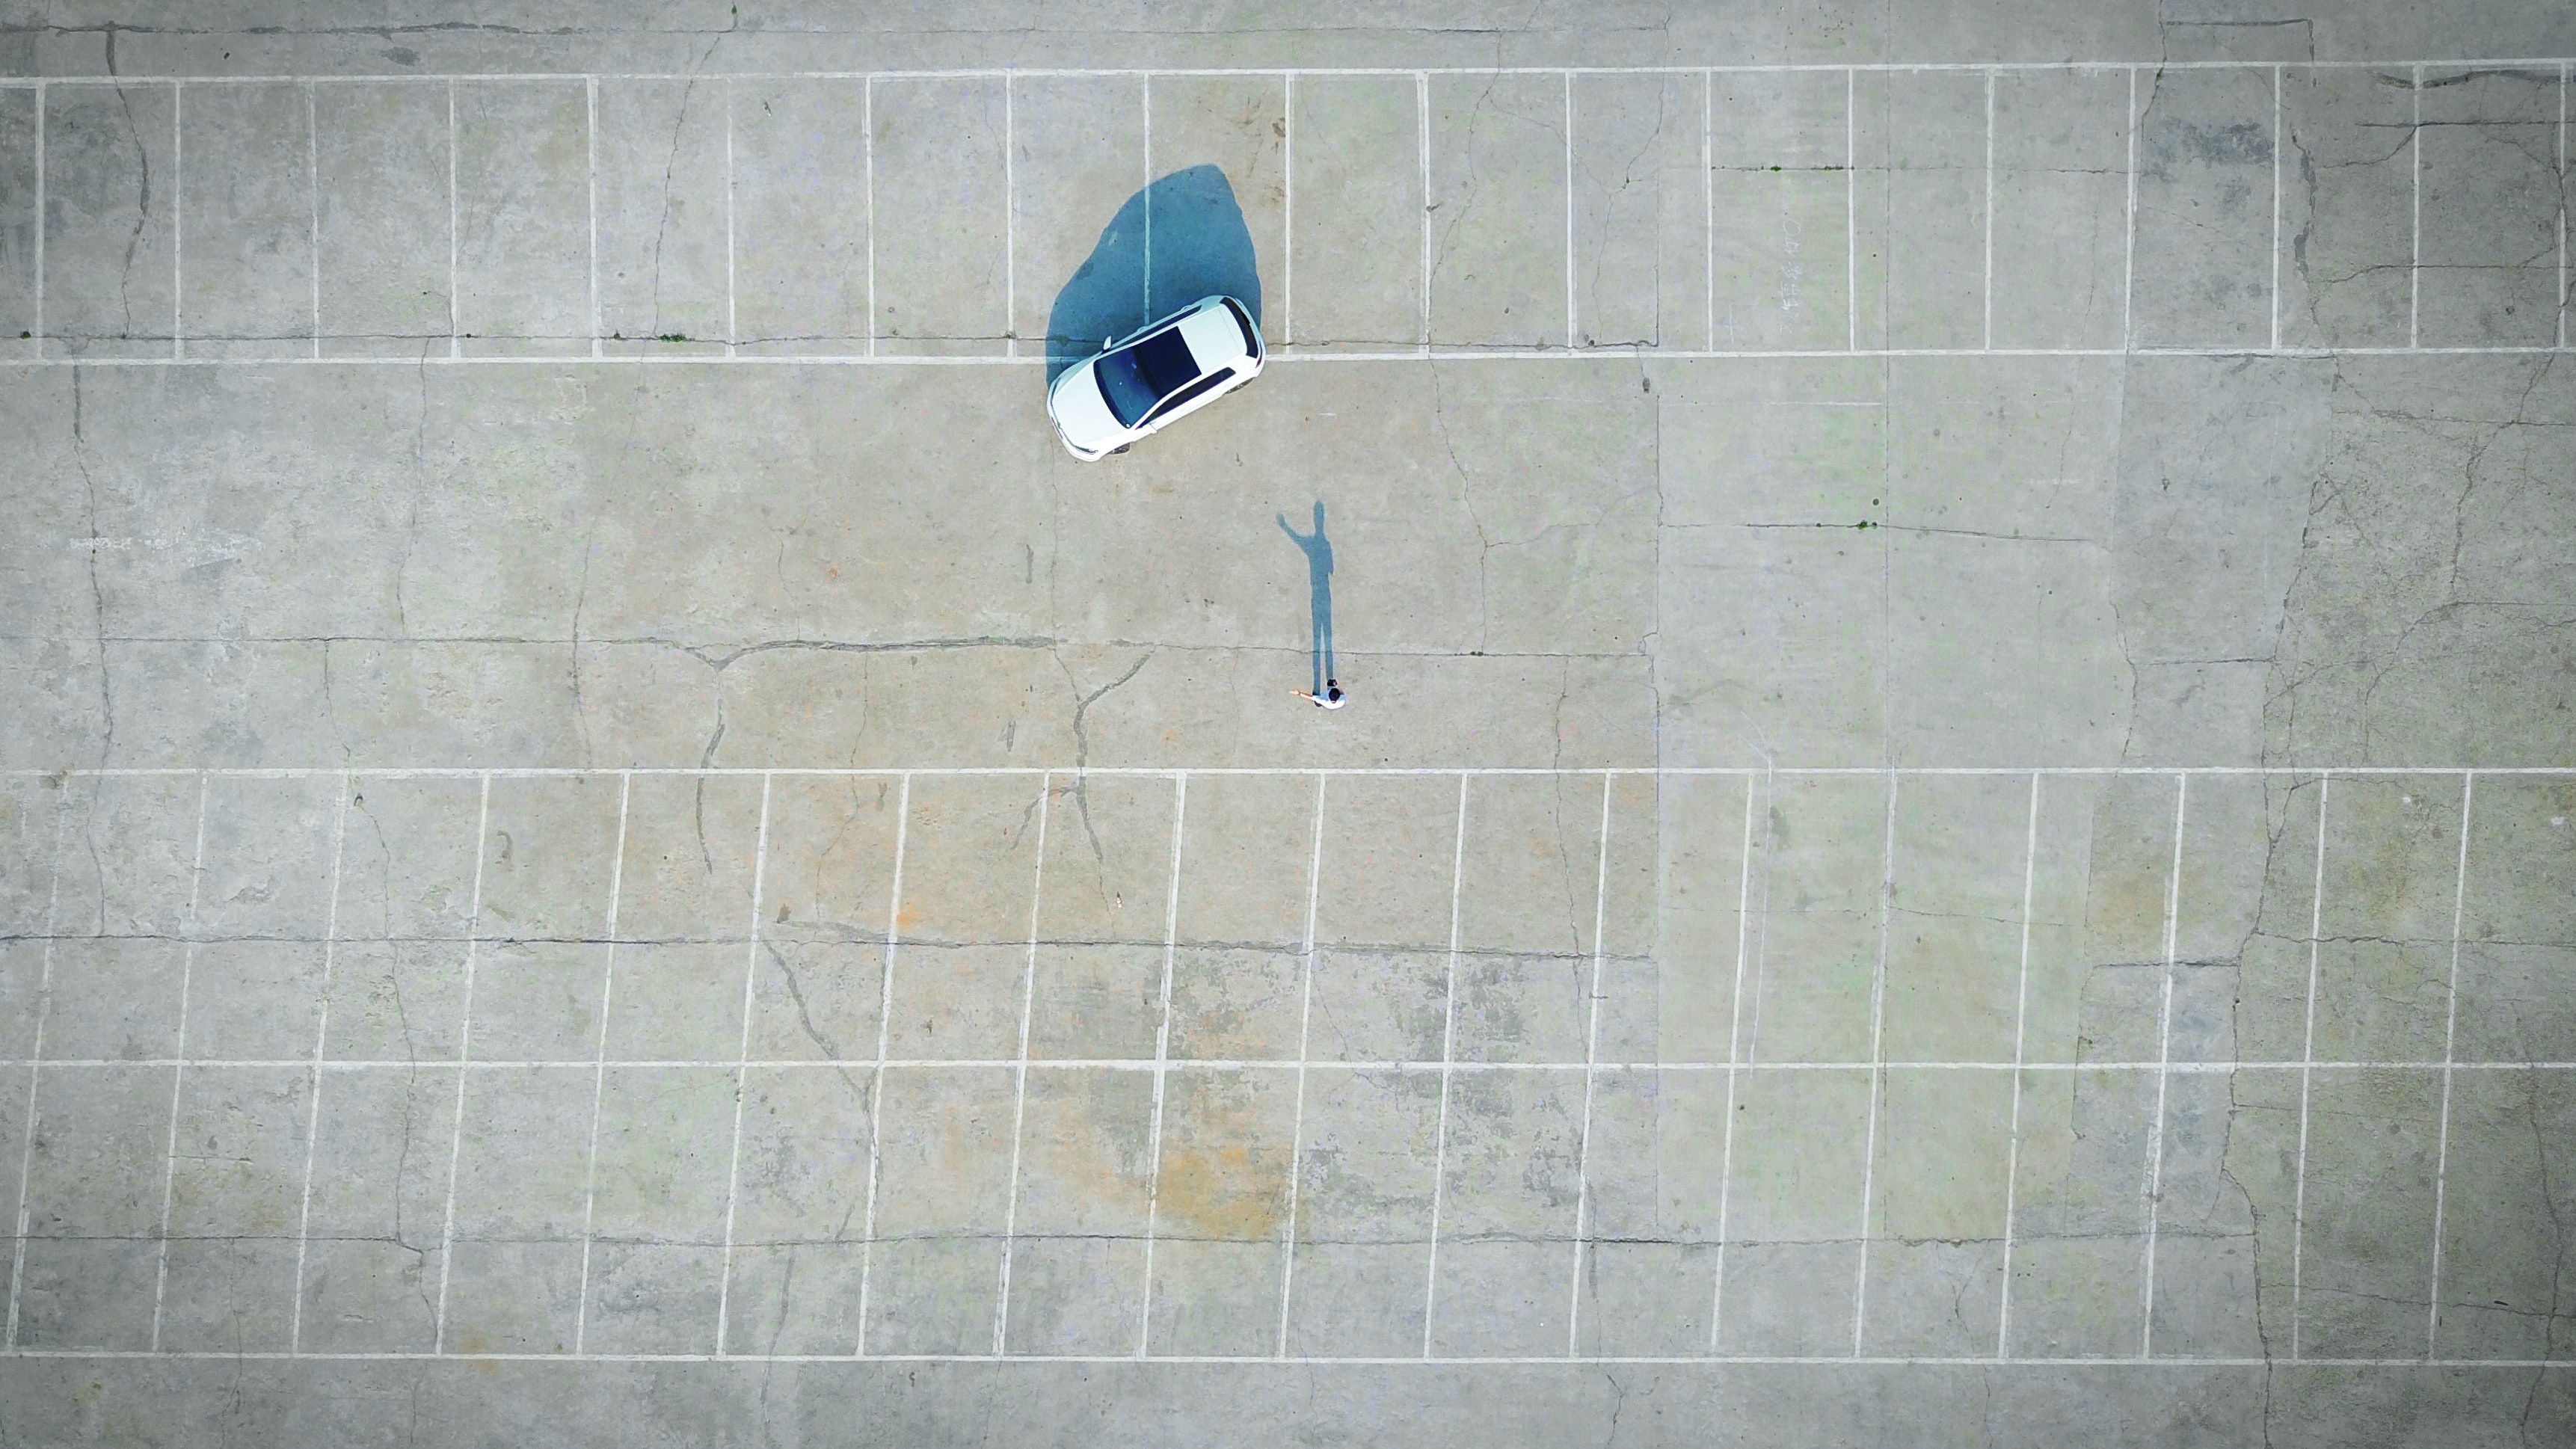 A drone shot of a lone person near a white car in a parking lot